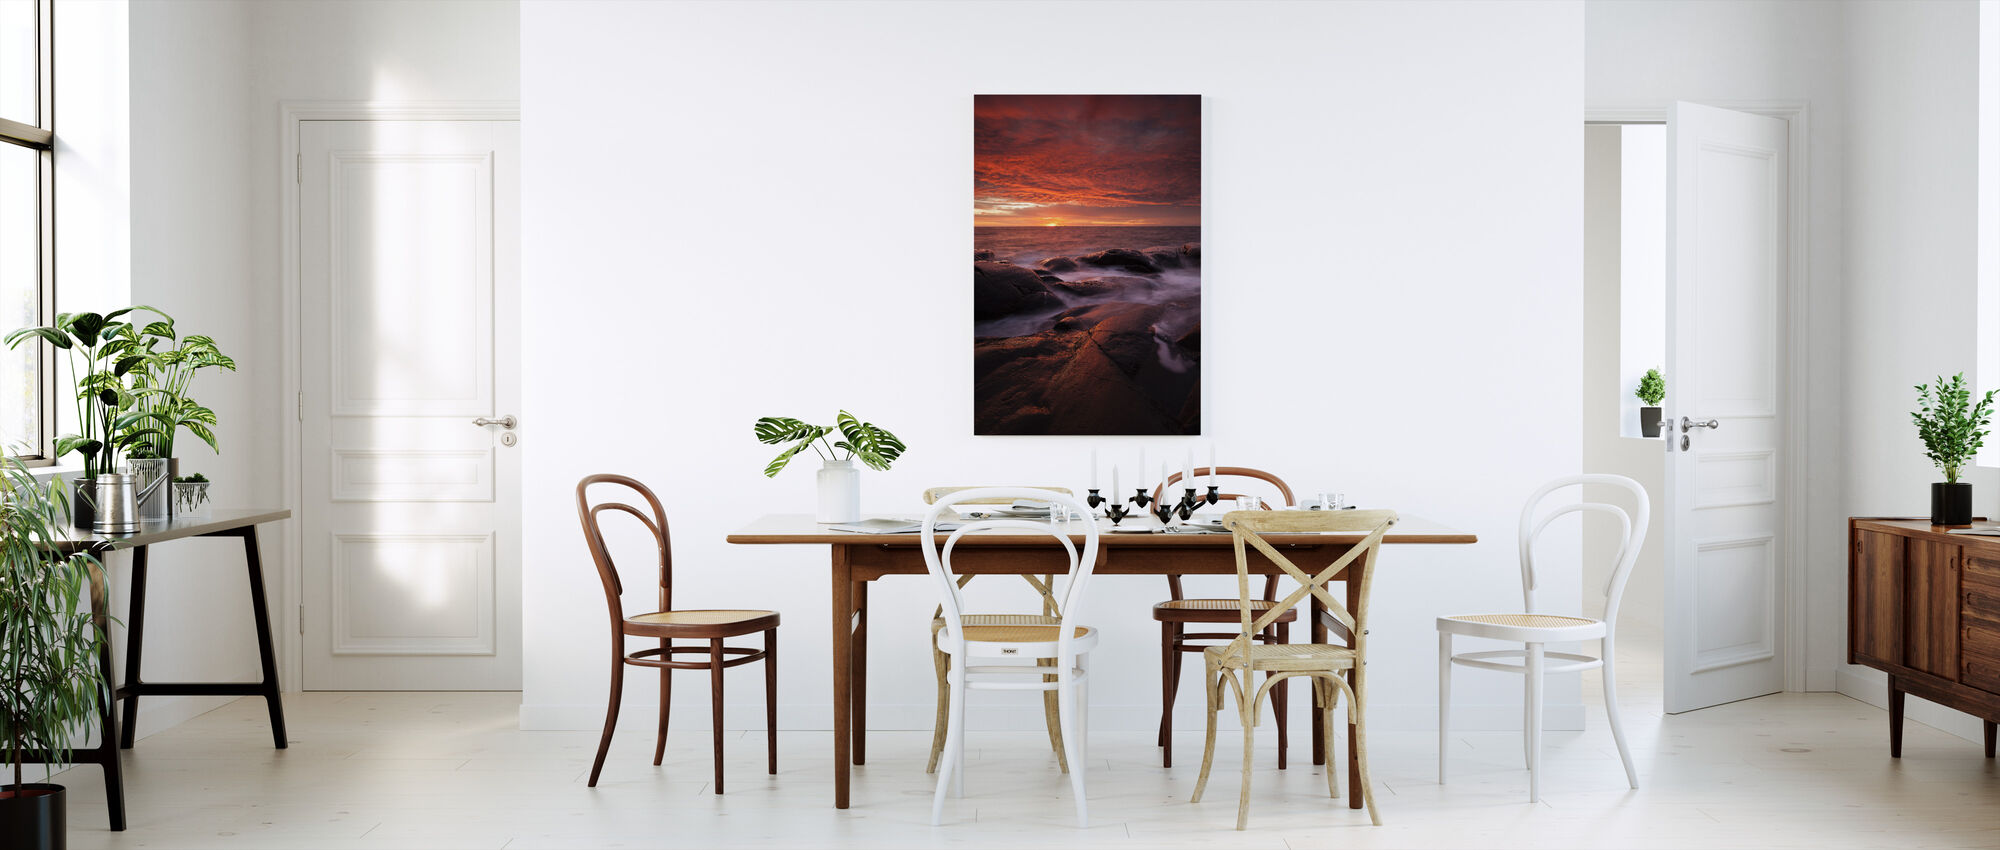 Submerged in the Sun - Canvas print - Kitchen